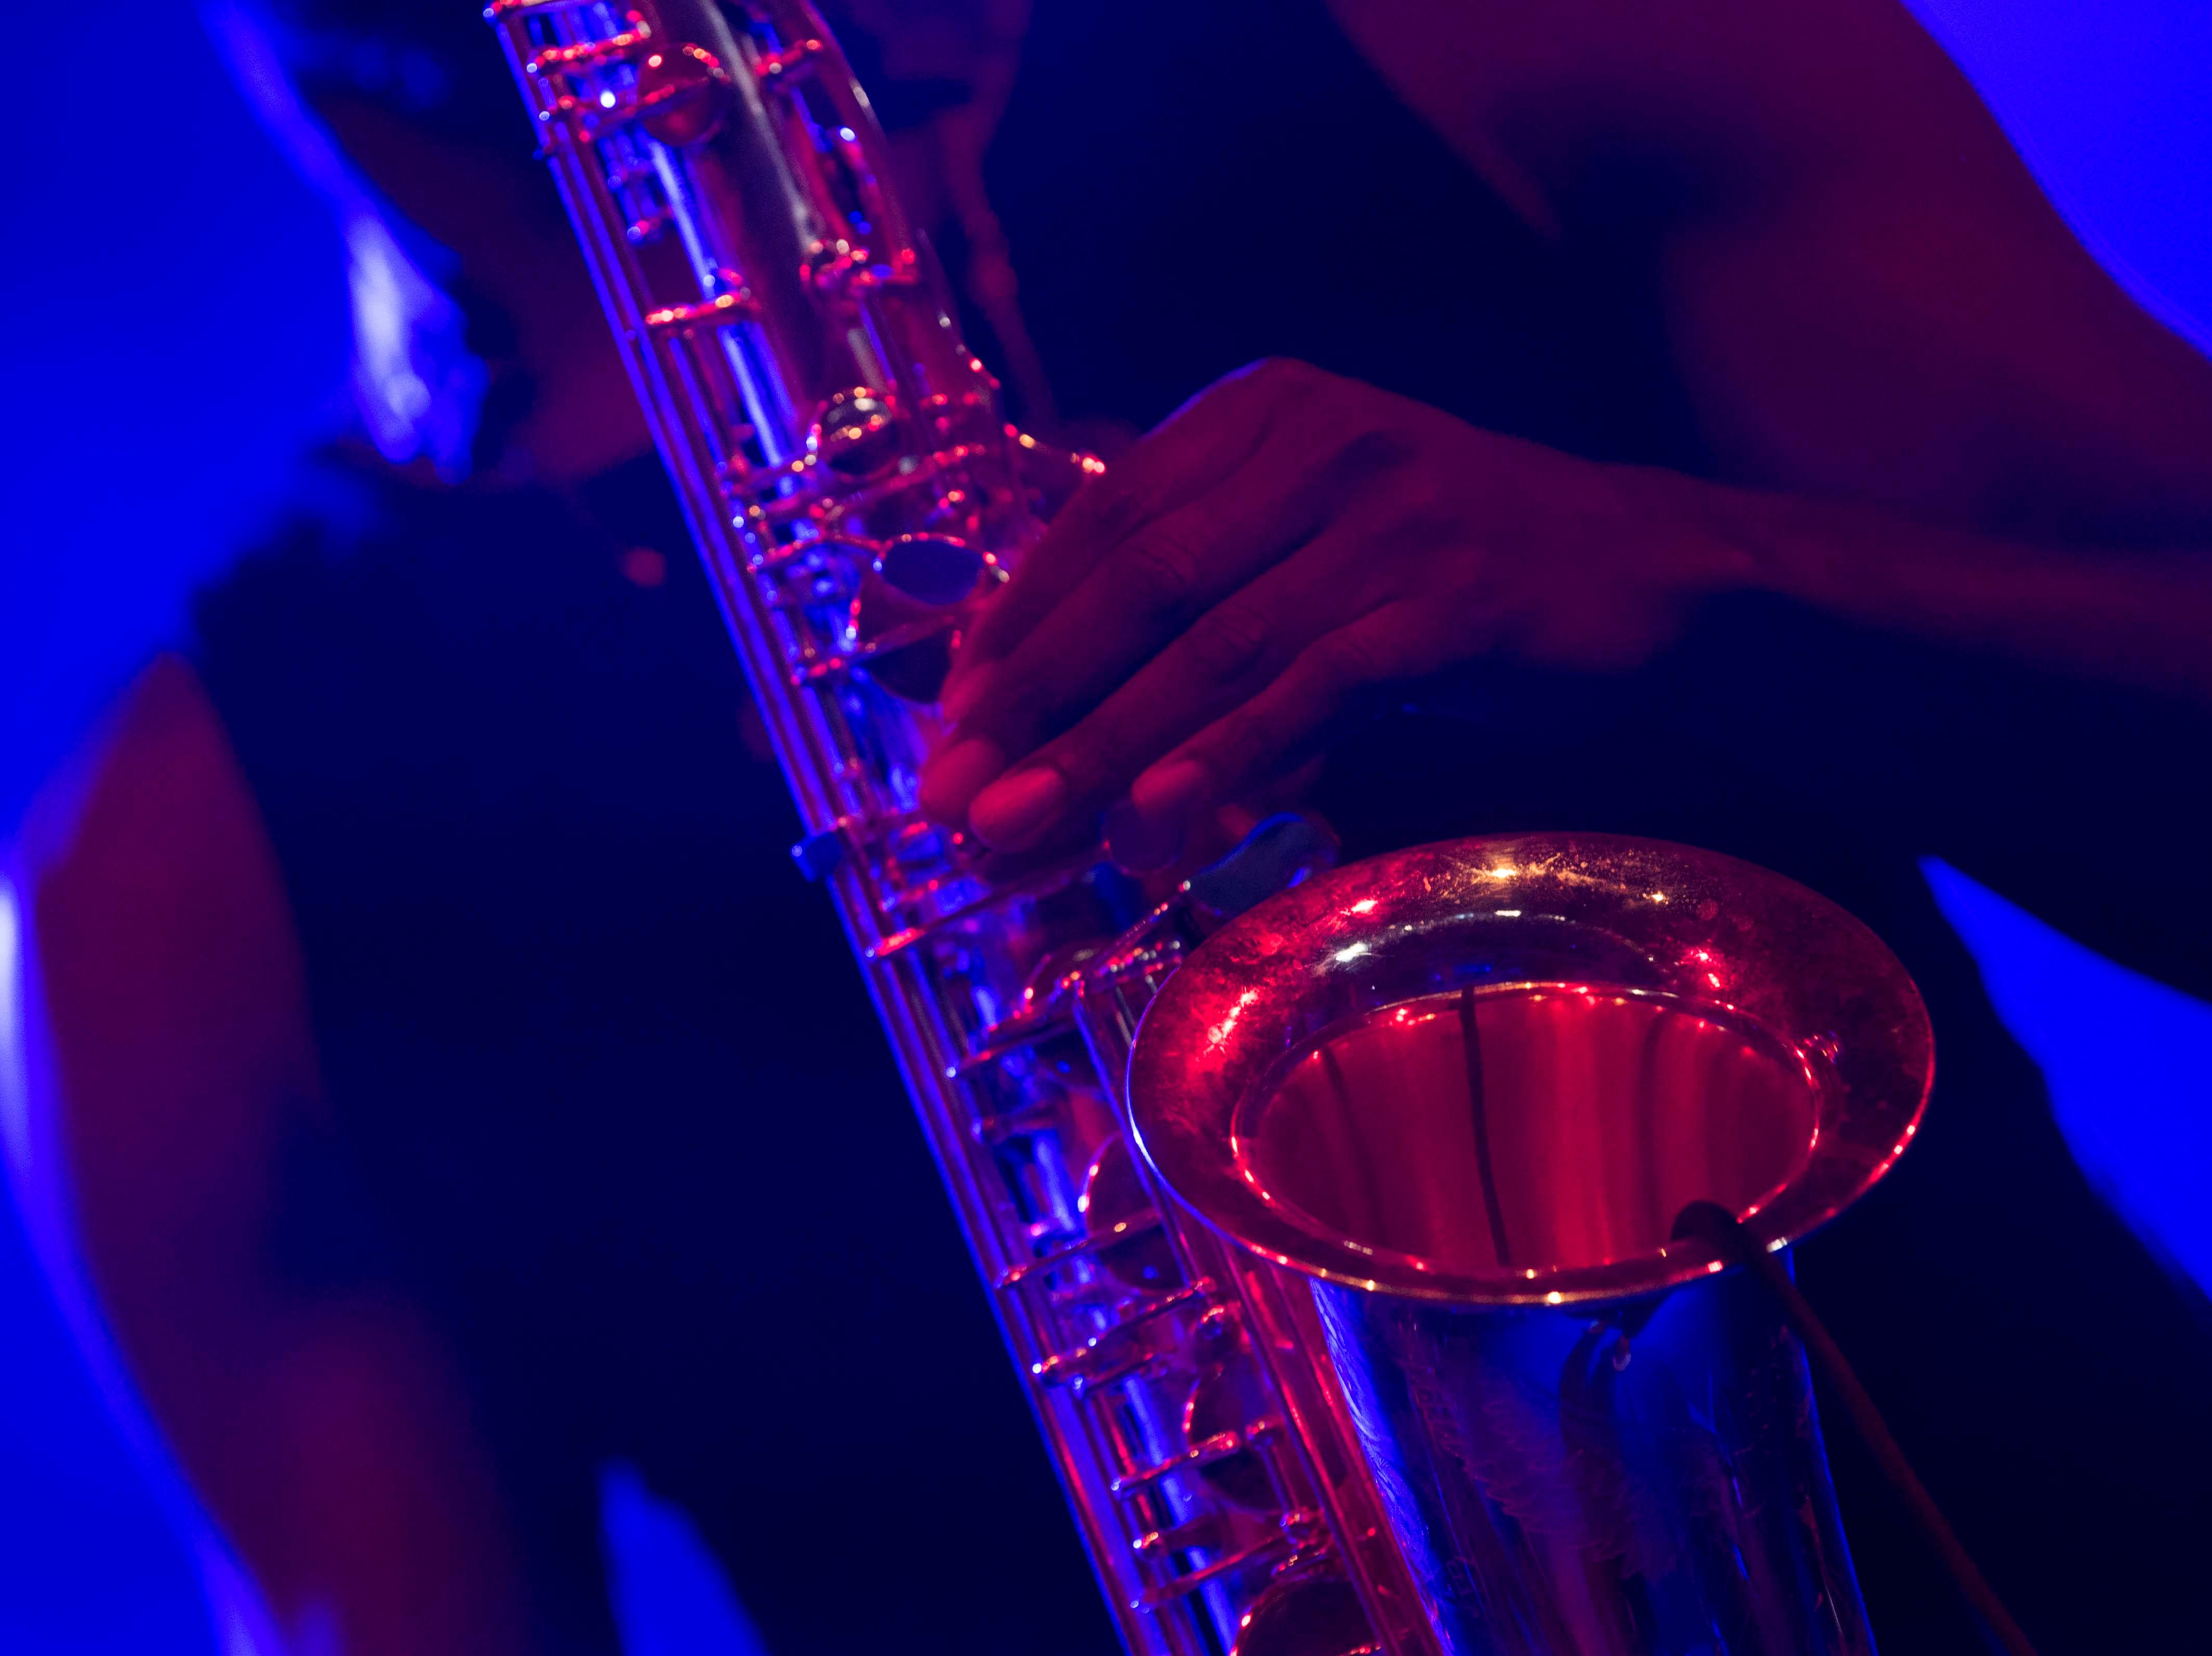 The Comet is Coming's saxophonist Shabaka Hutchings plays in The Mill & Mine during Big Ears Music Festival in downtown Knoxville Friday, March 22, 2019.